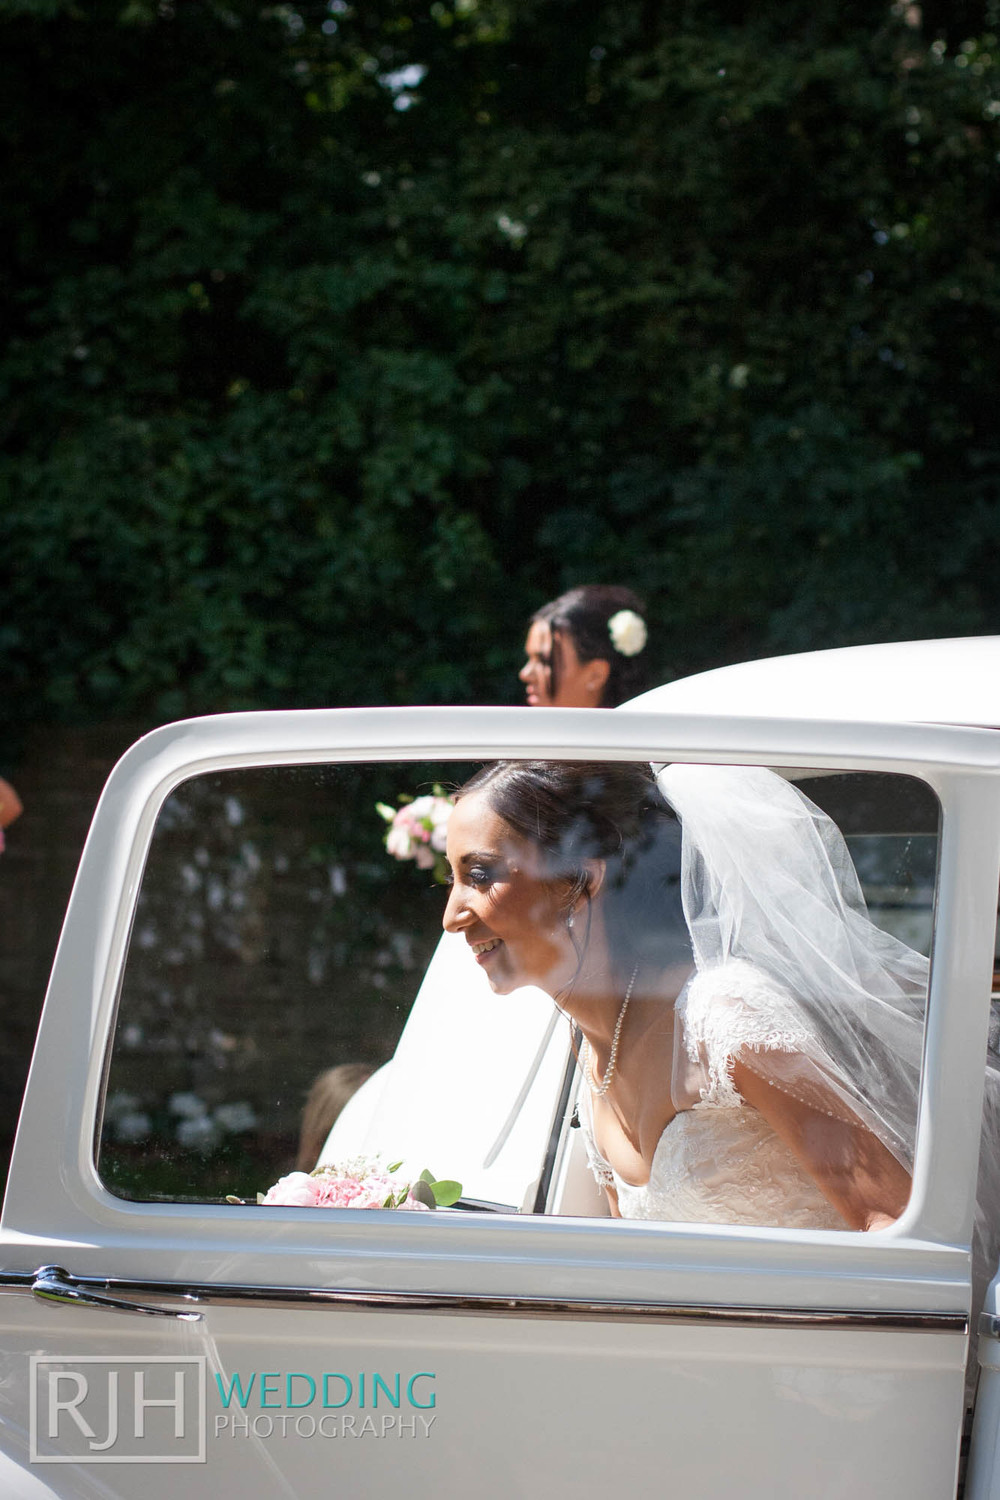 RJH Wedding Photography_Tankersley Manor Wedding_17.jpg